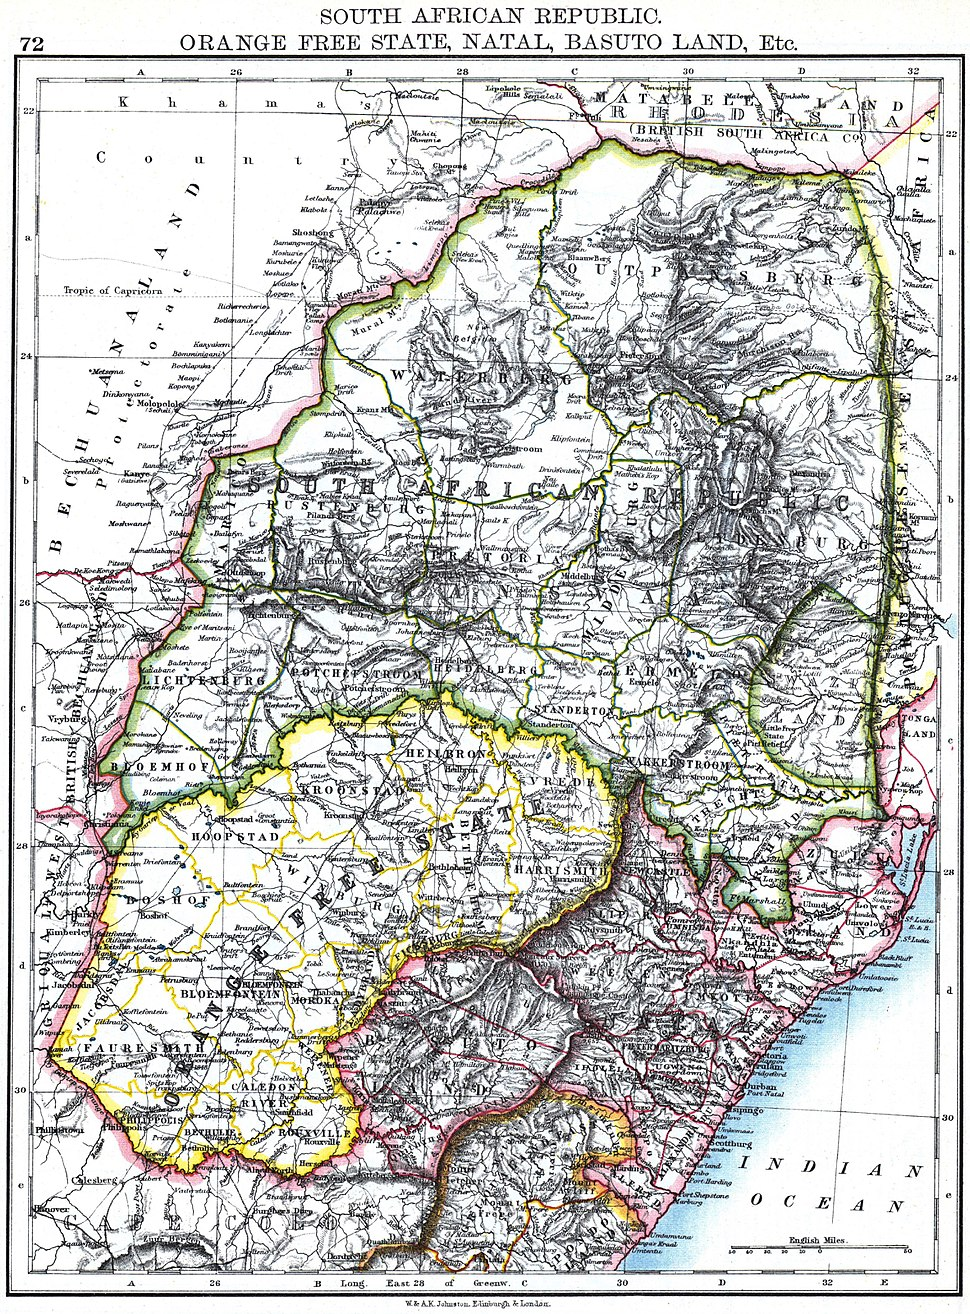 Johnston, W. and A.K. - South African Republic. Orange Free State, Natal, Basuto Land, Etc.